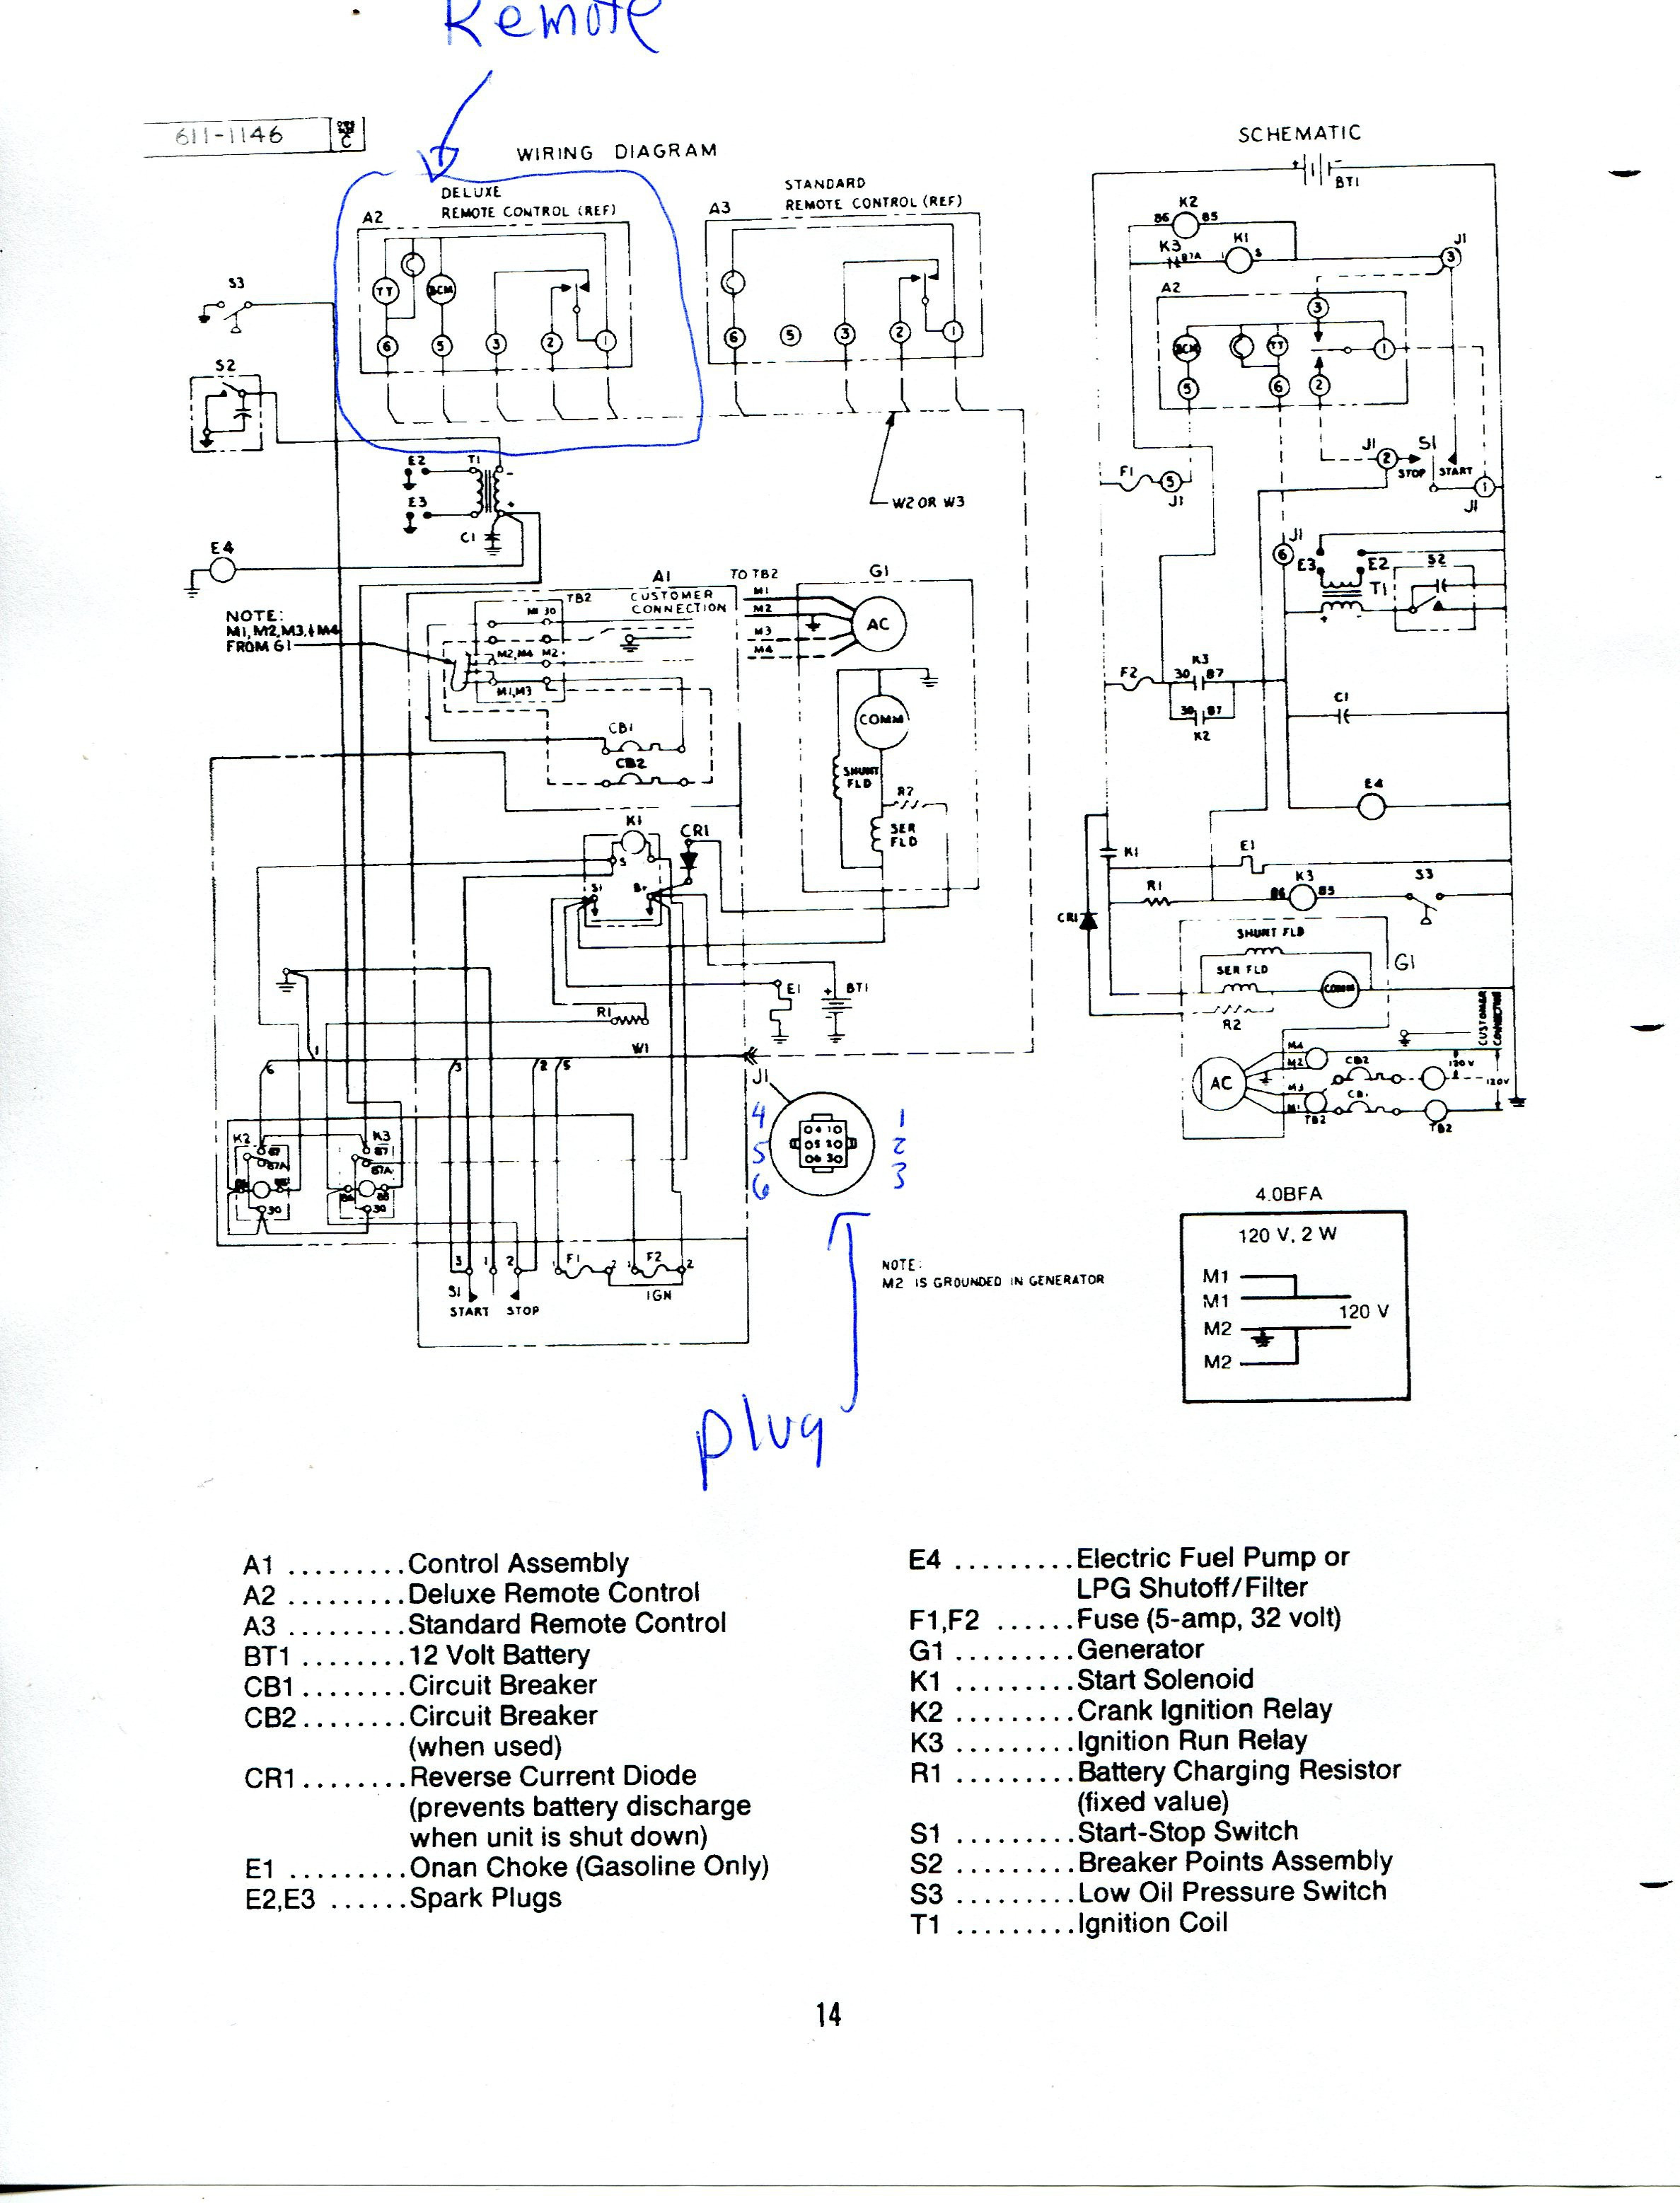 Wiring Diagram For Onan Generator - wiring diagram symbols ... on